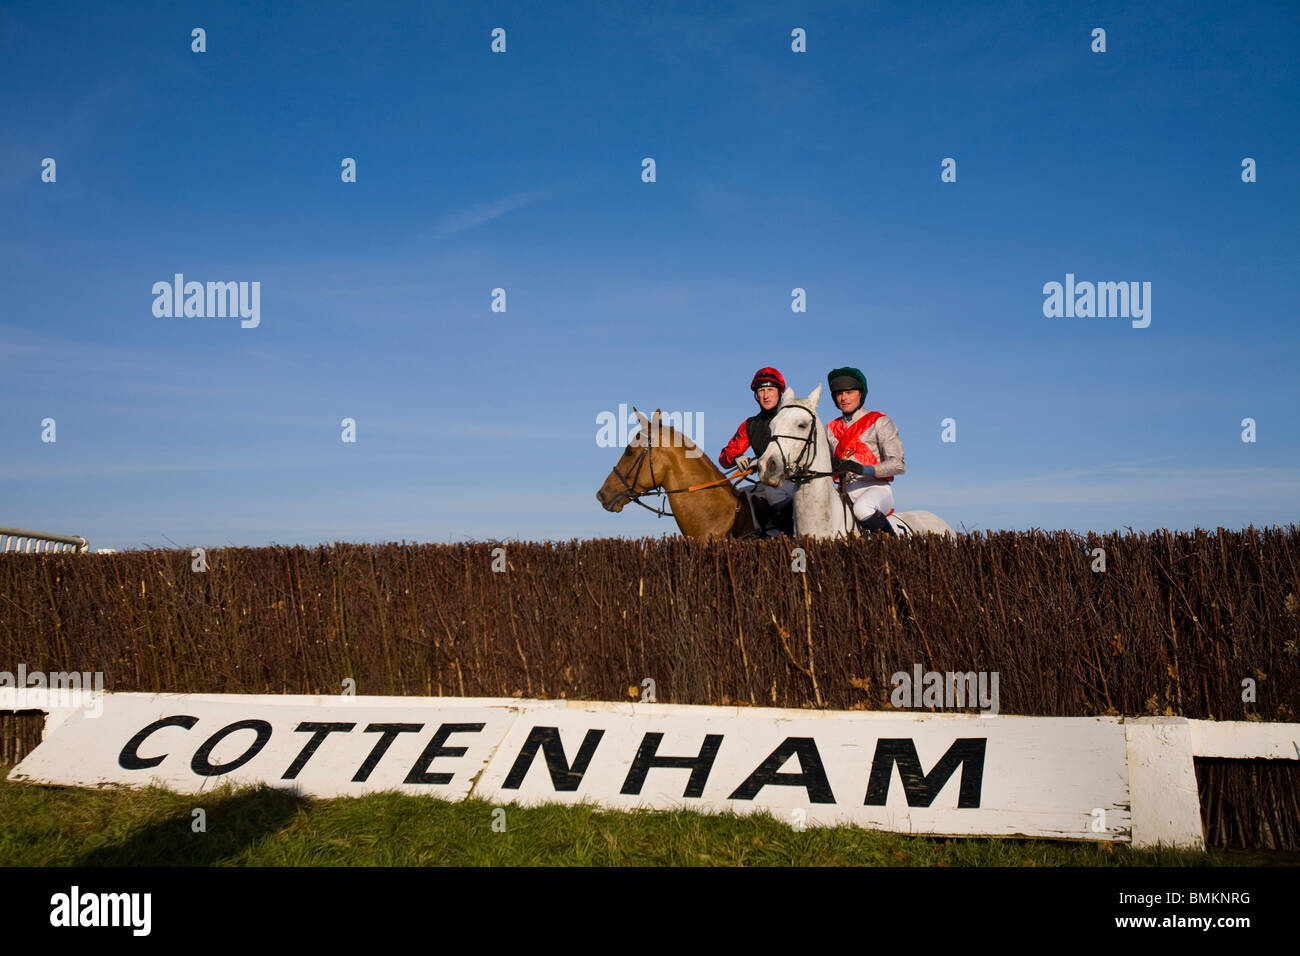 Point-to-Point Horse racing at Cottenham in Cambridgeshire Stock Photo